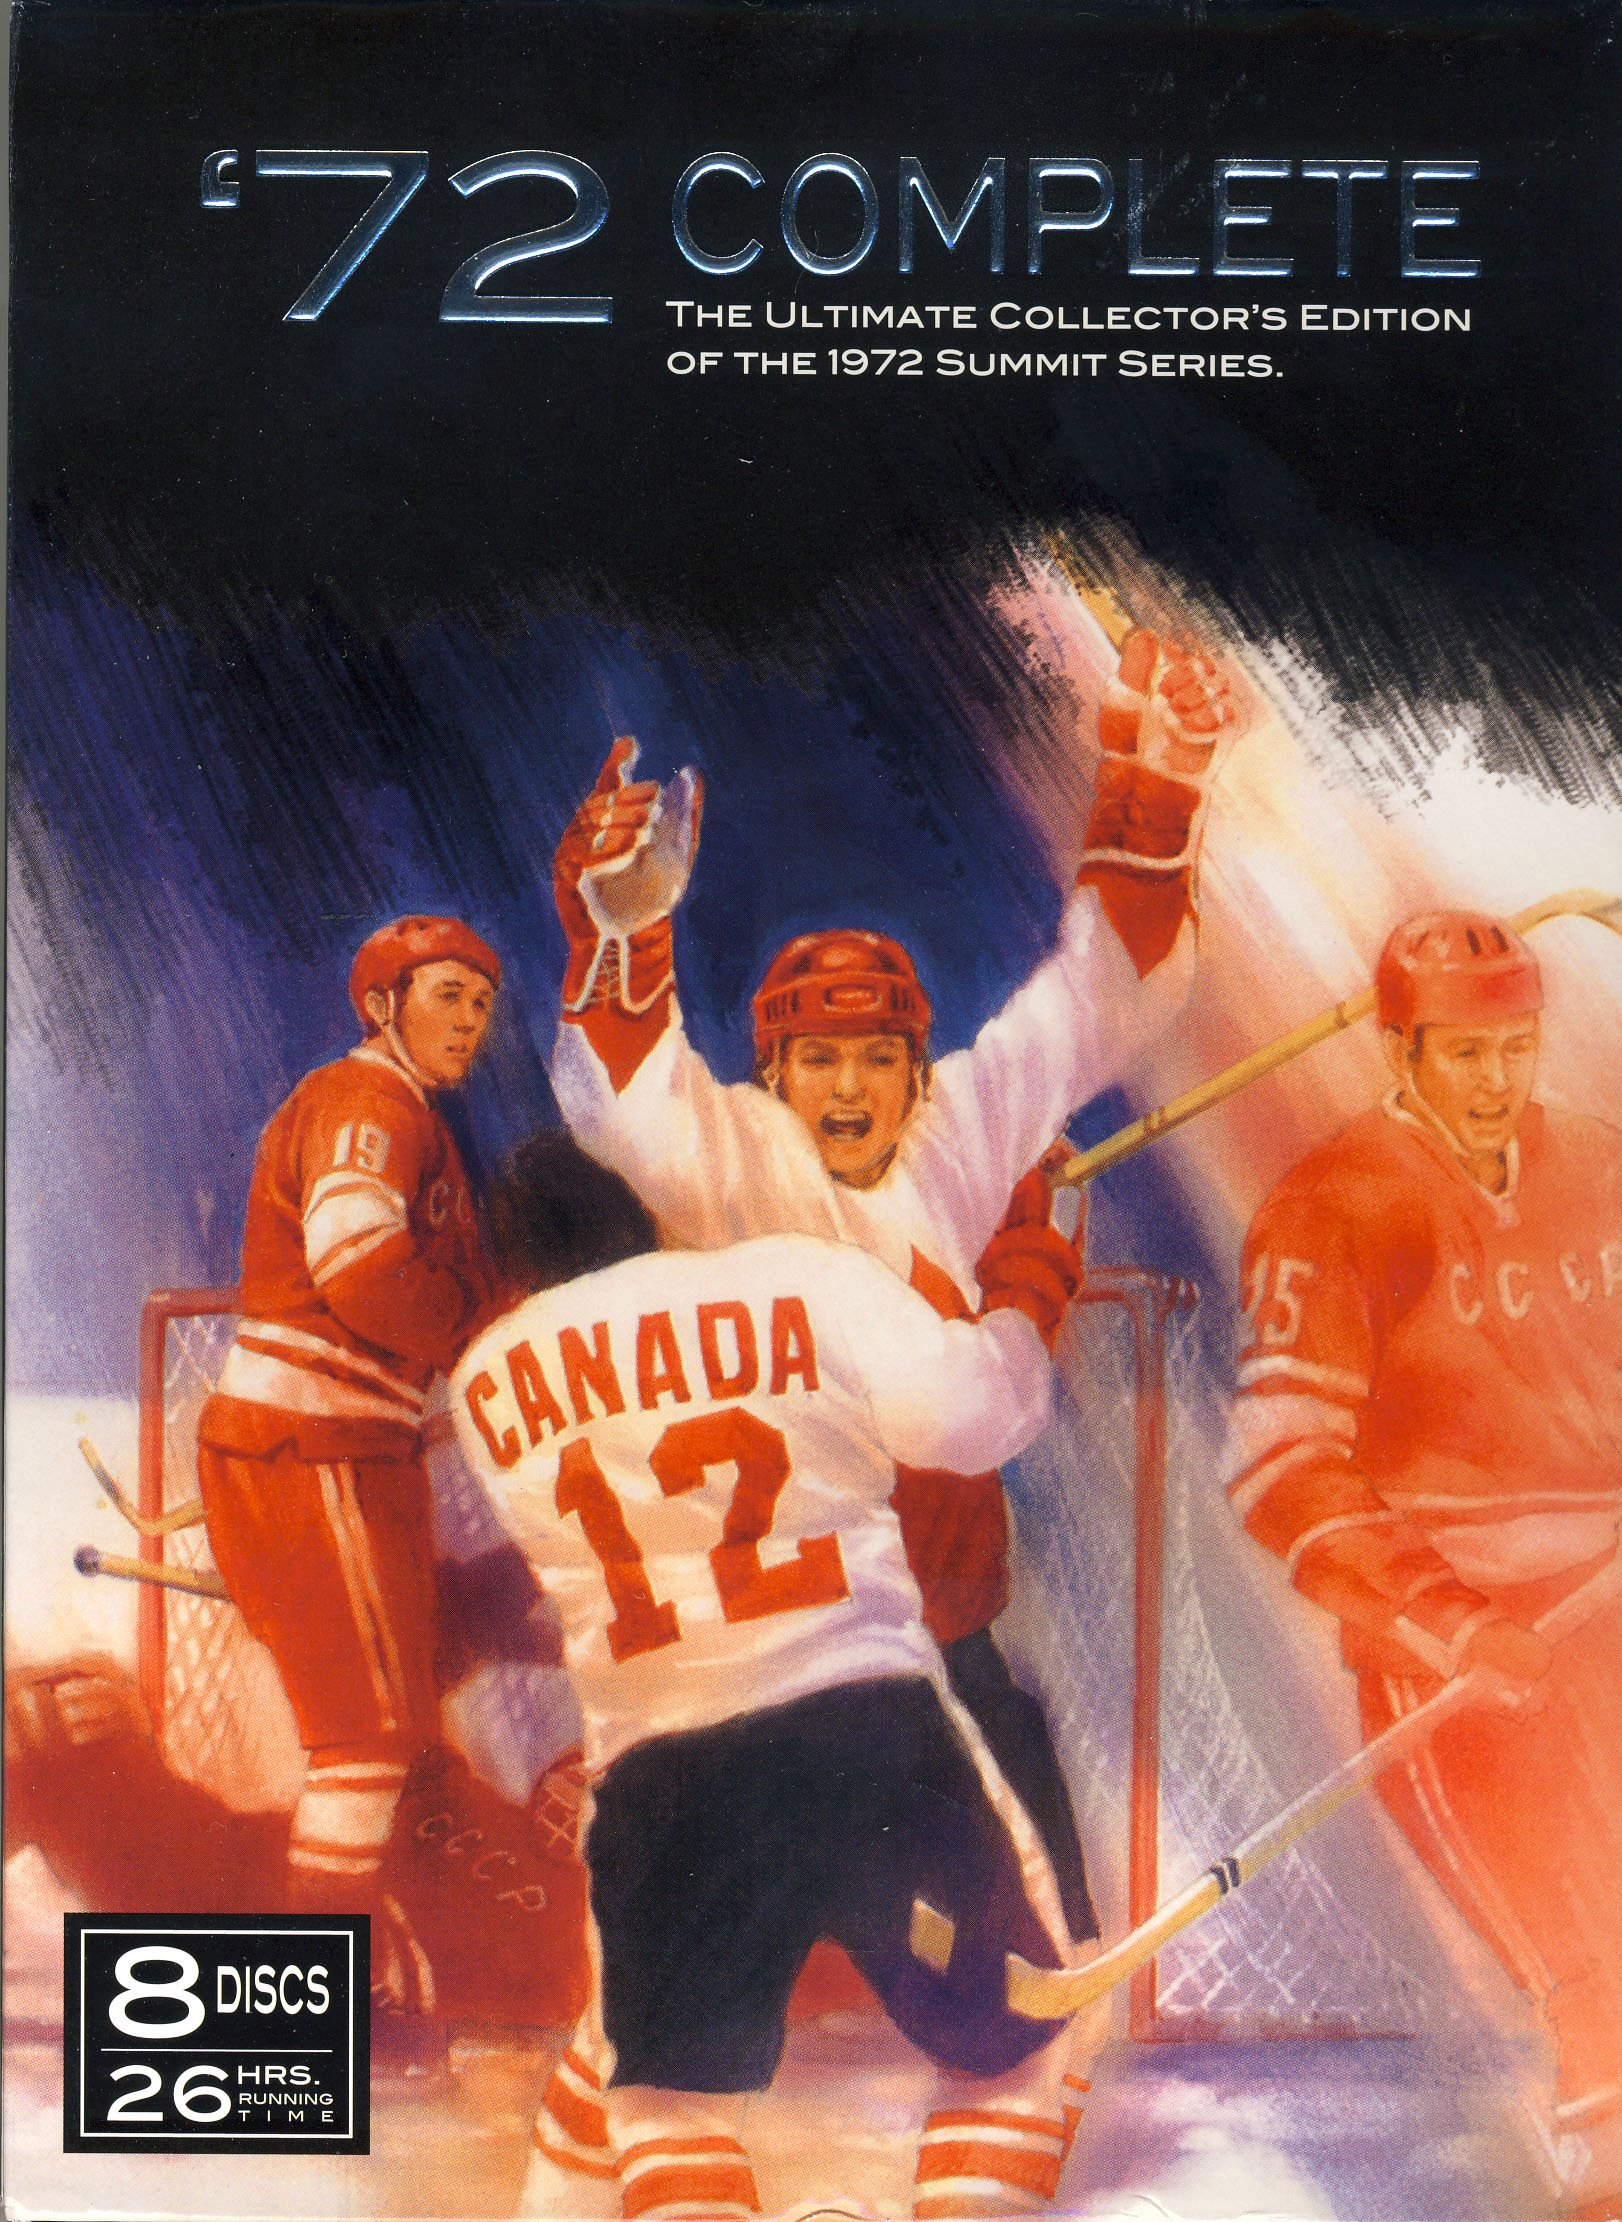 '72 Complete: 1972 Summit Series (Ultimate Collector's Edition) by Universal Studios Home Entertainment